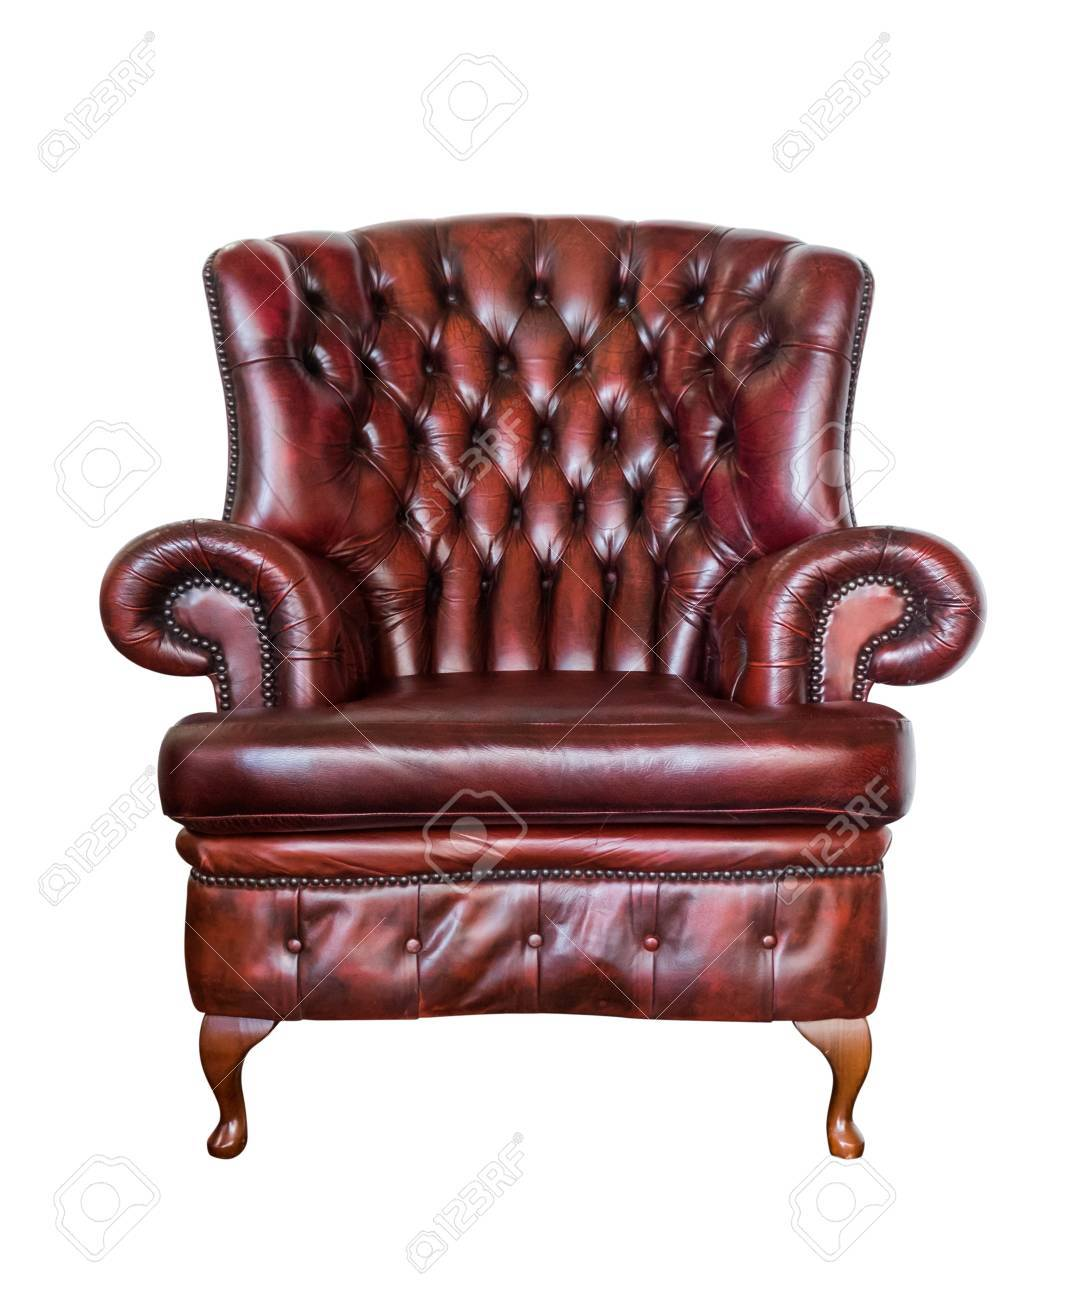 Red Vintage Armchair Isolated On White Background Stock Photo